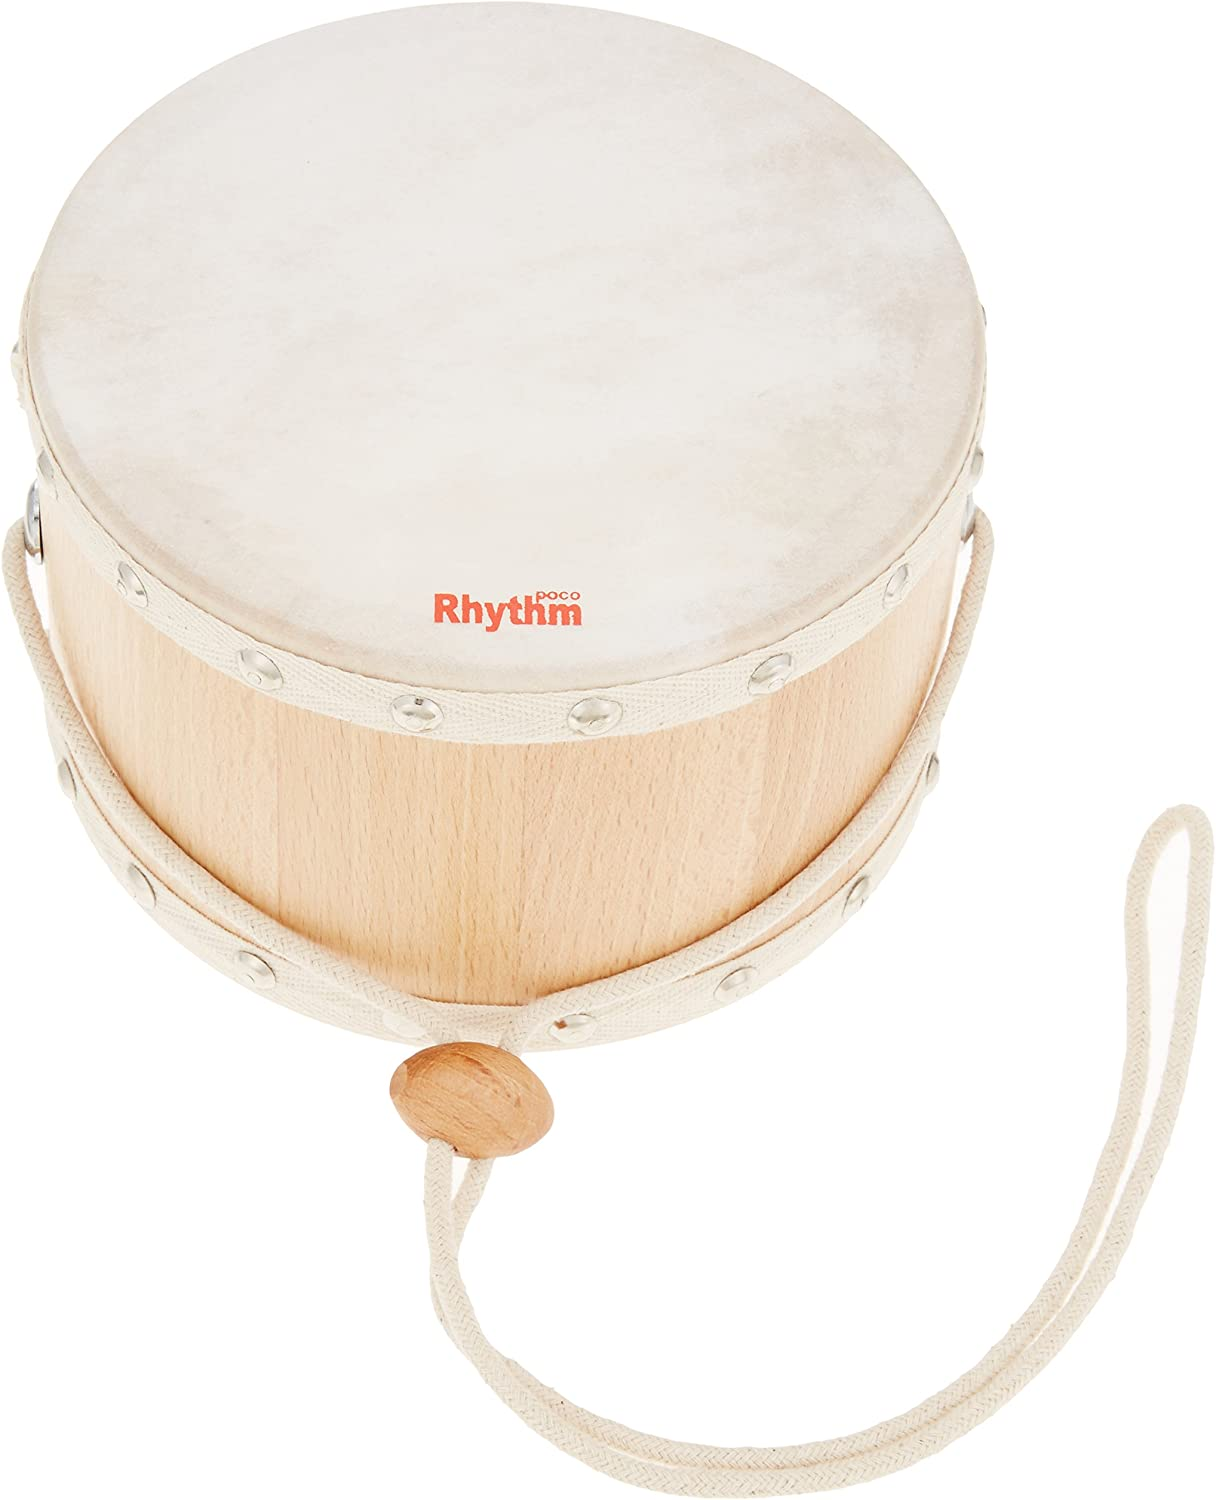 Rhythm Poco   baby drum RP390 BD (japan import)